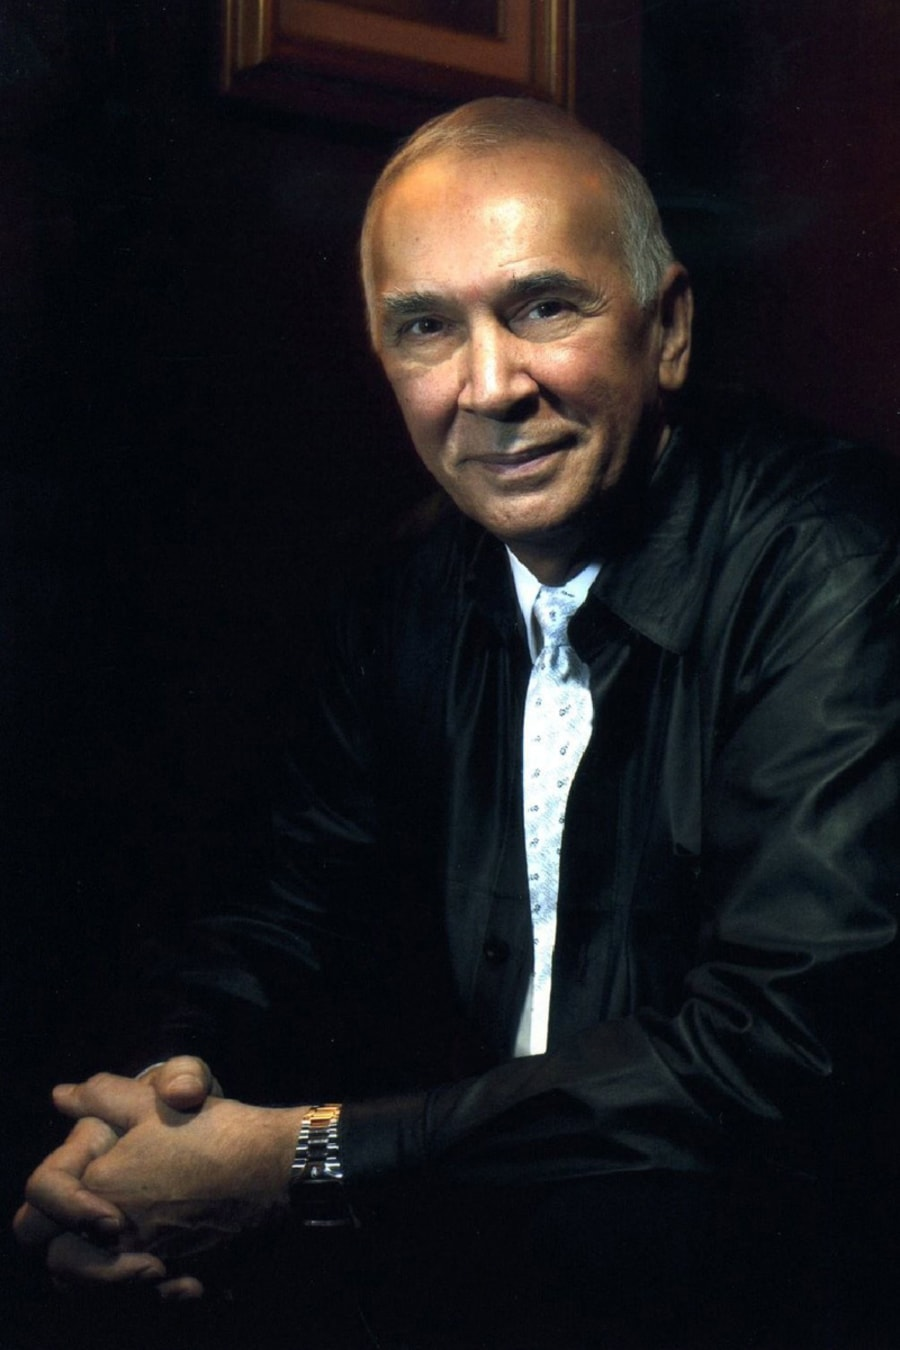 Frank Langella in The Father